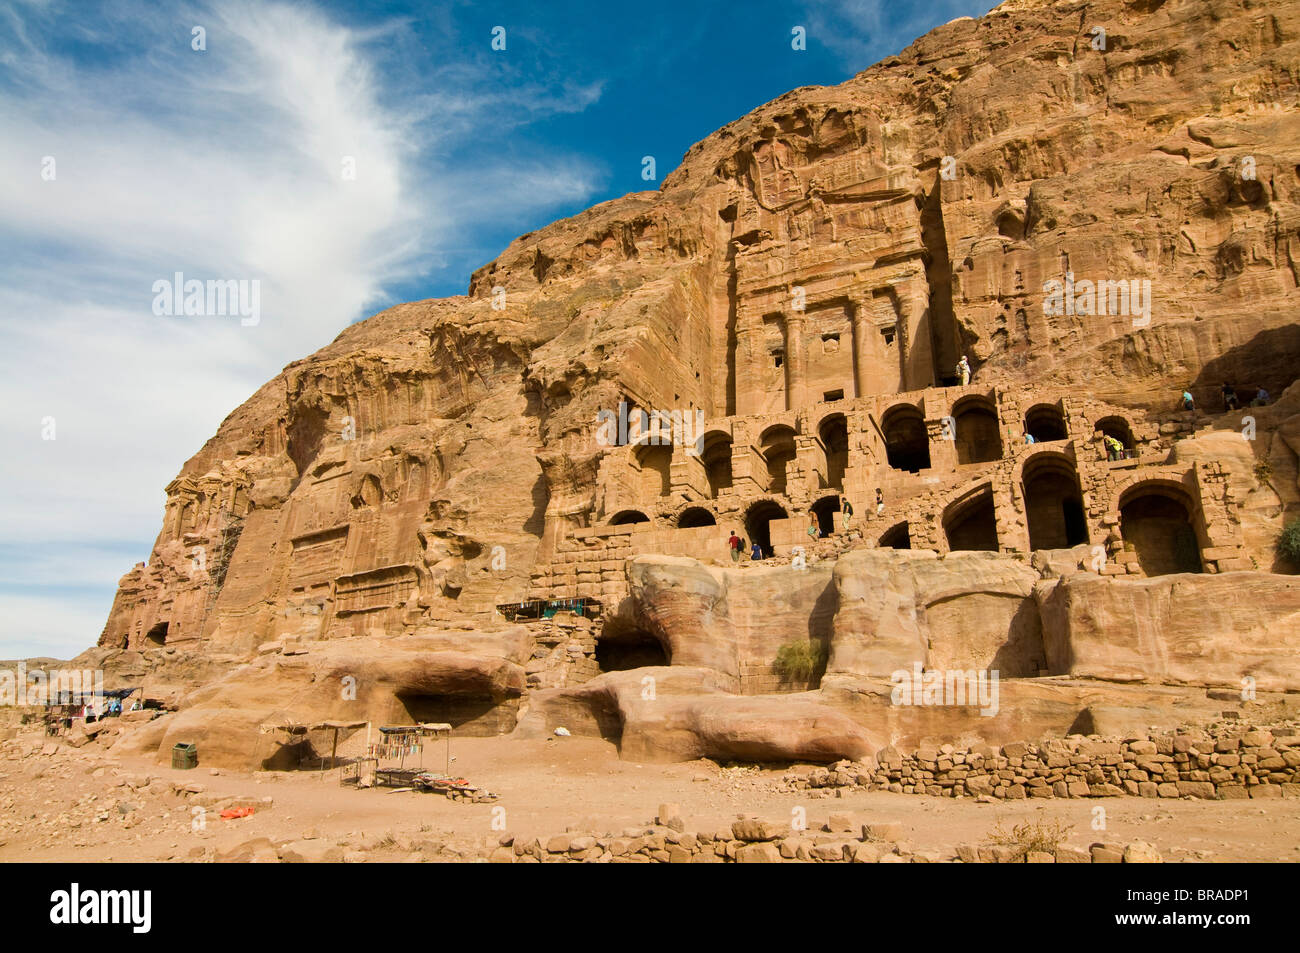 The royal tombs of Petra, UNESCO World Heritage Site, Jordan, Middle East Stock Photo